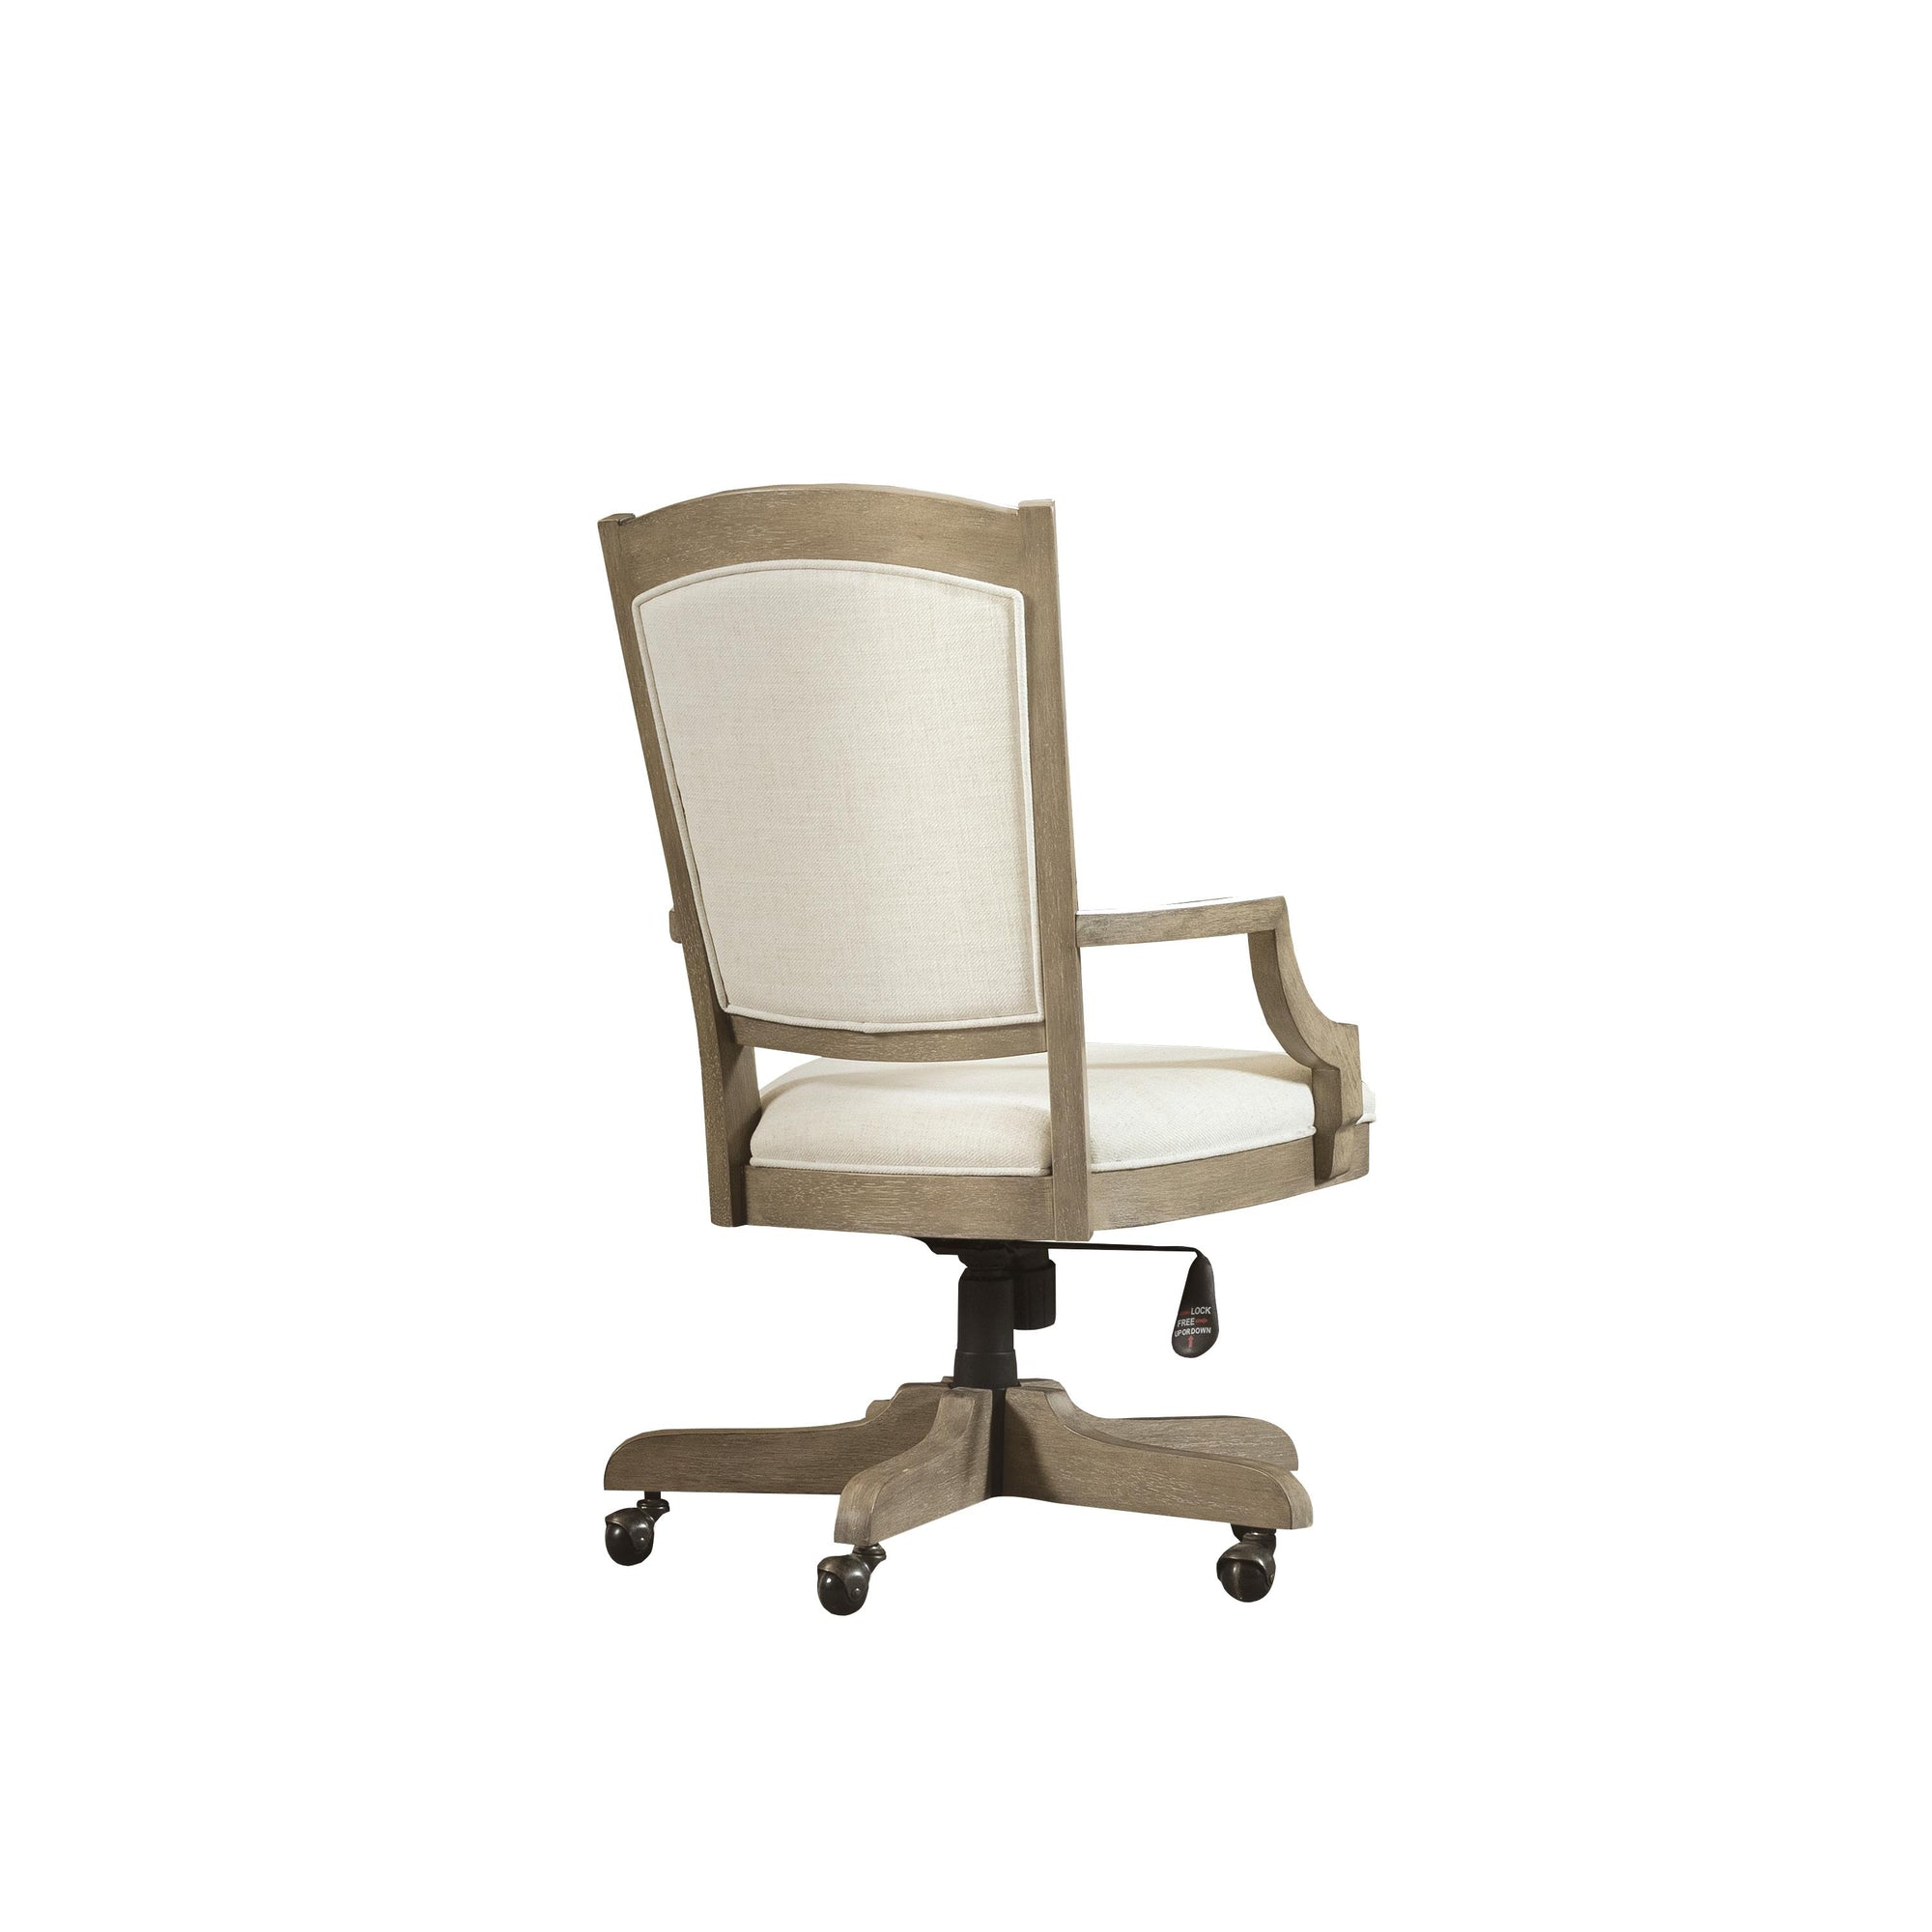 Myra Upholstered Desk Chair